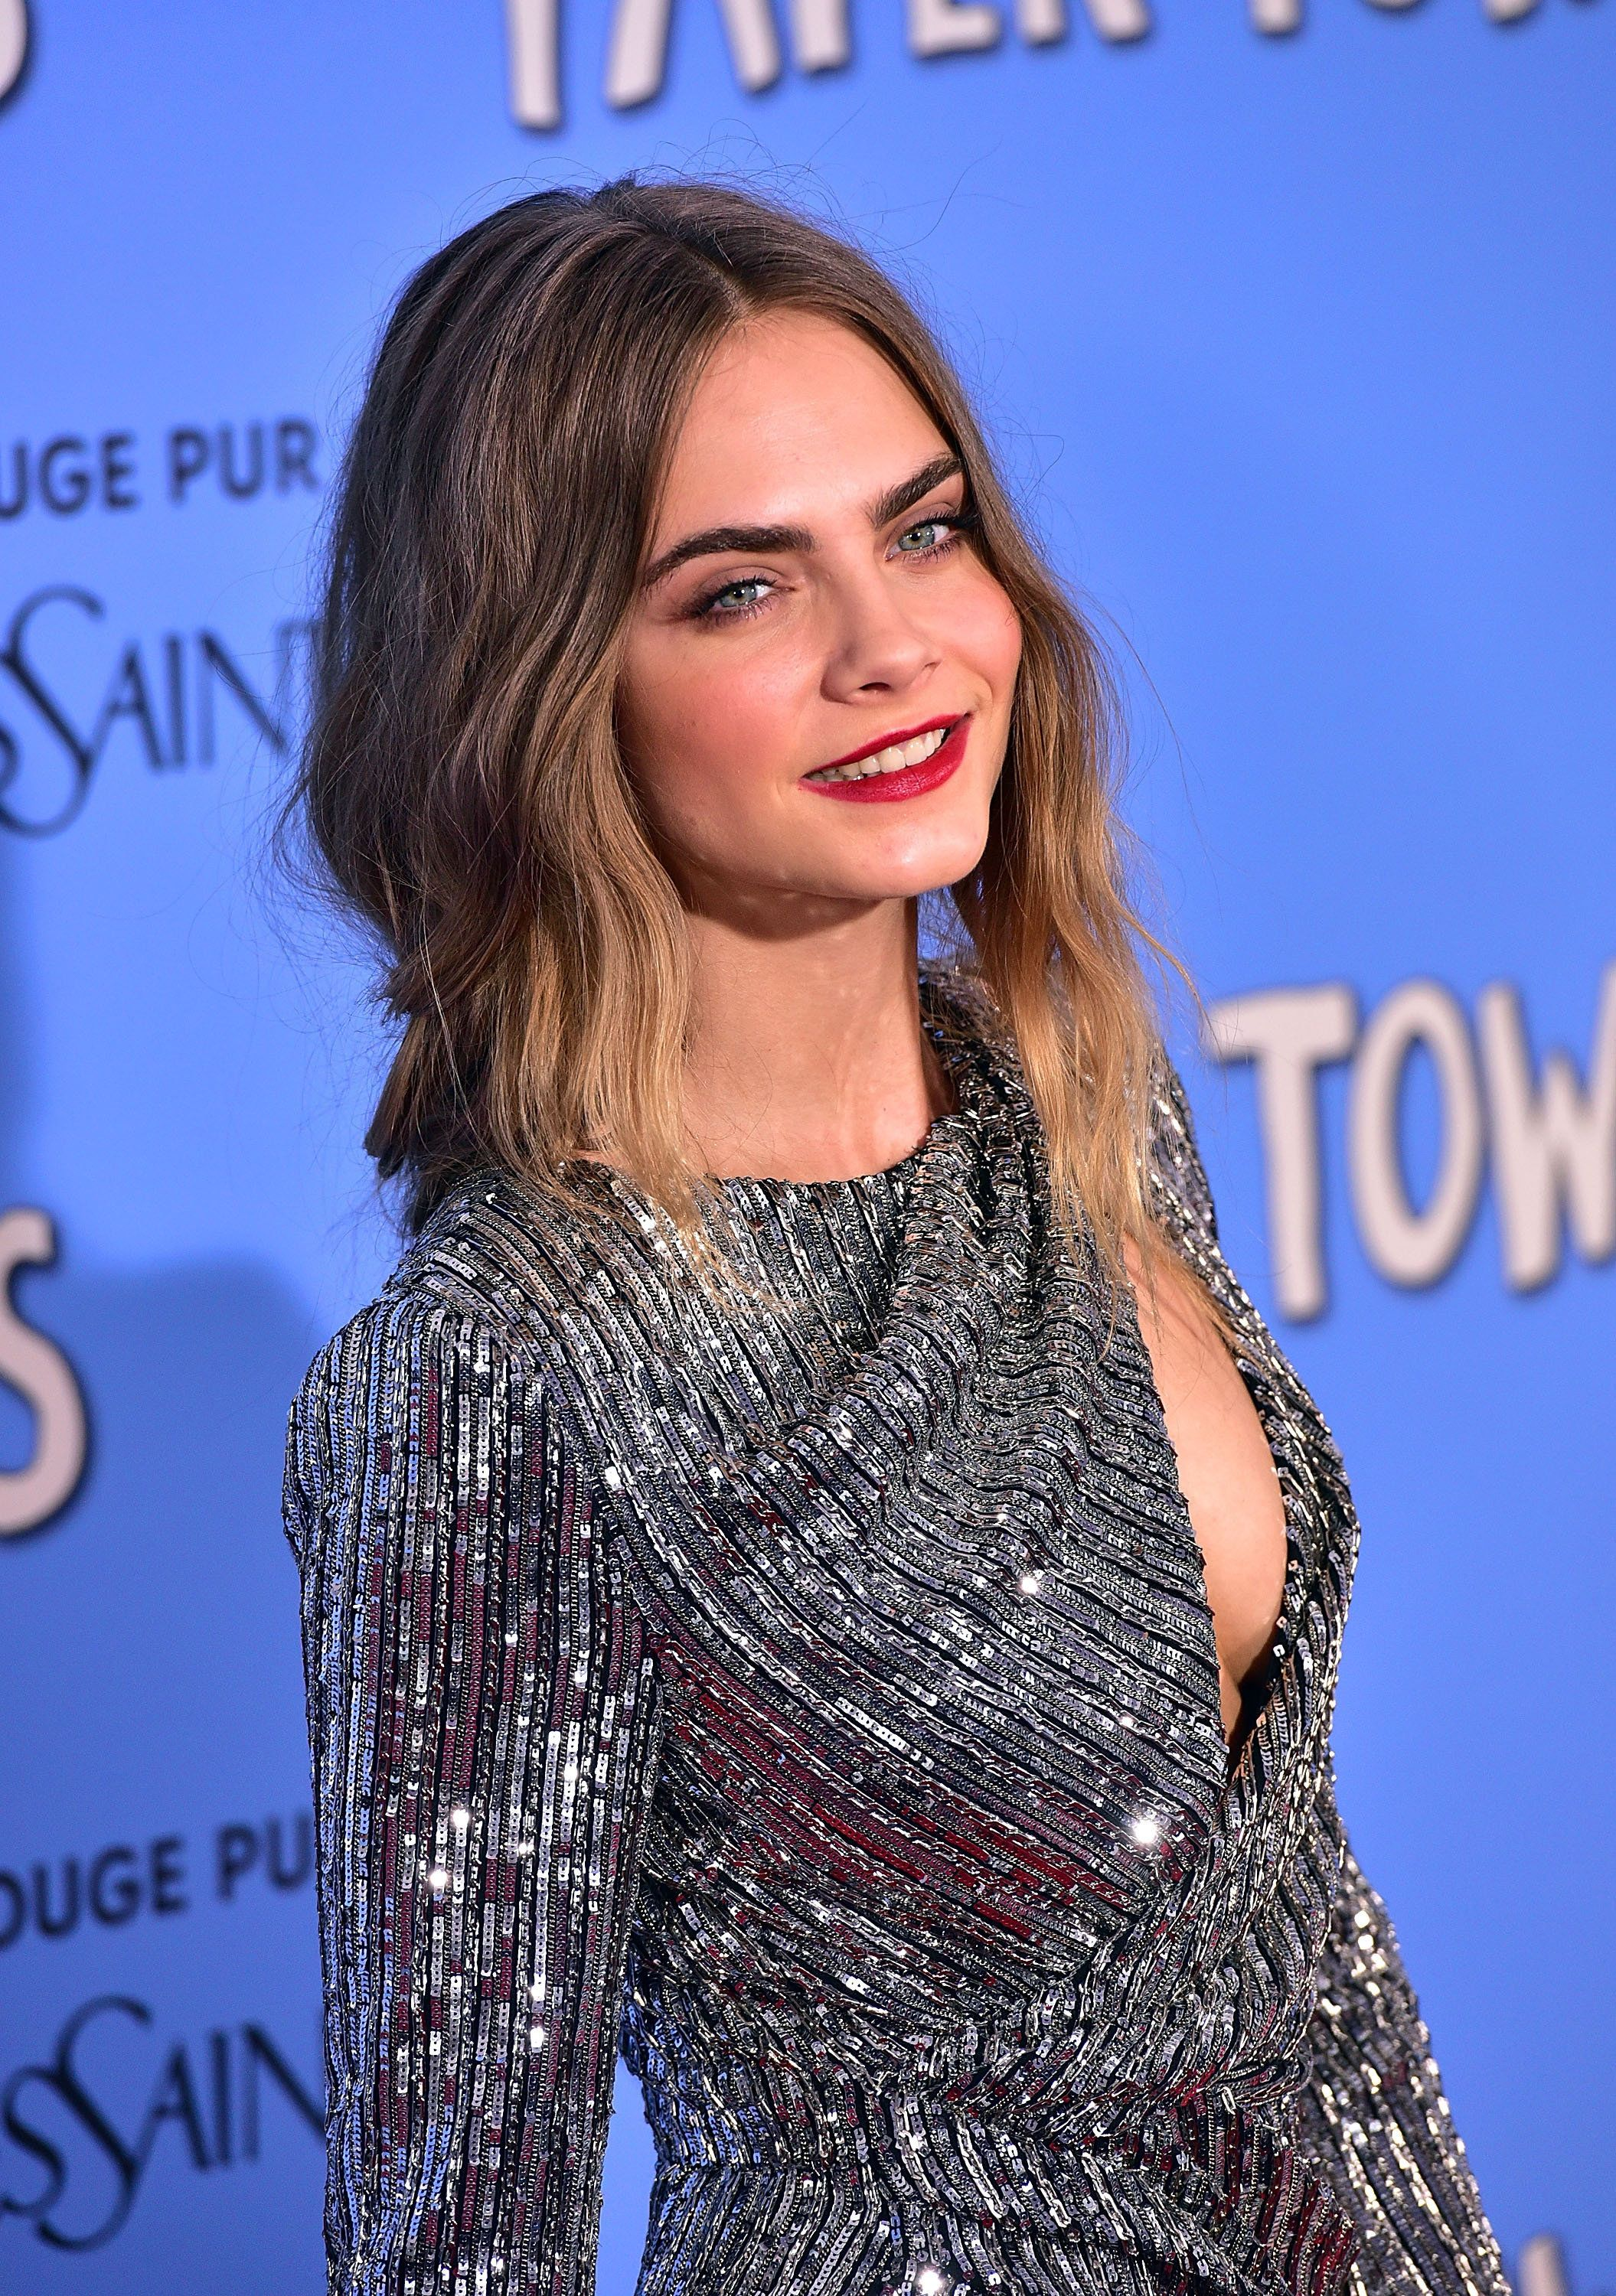 NEW YORK, NY - JULY 21:  Cara Delevingne attends the 'Paper Towns' New York Premiere at AMC Loews Lincoln Square on July 21, 2015 in New York City.  (Photo by James Devaney/WireImage)